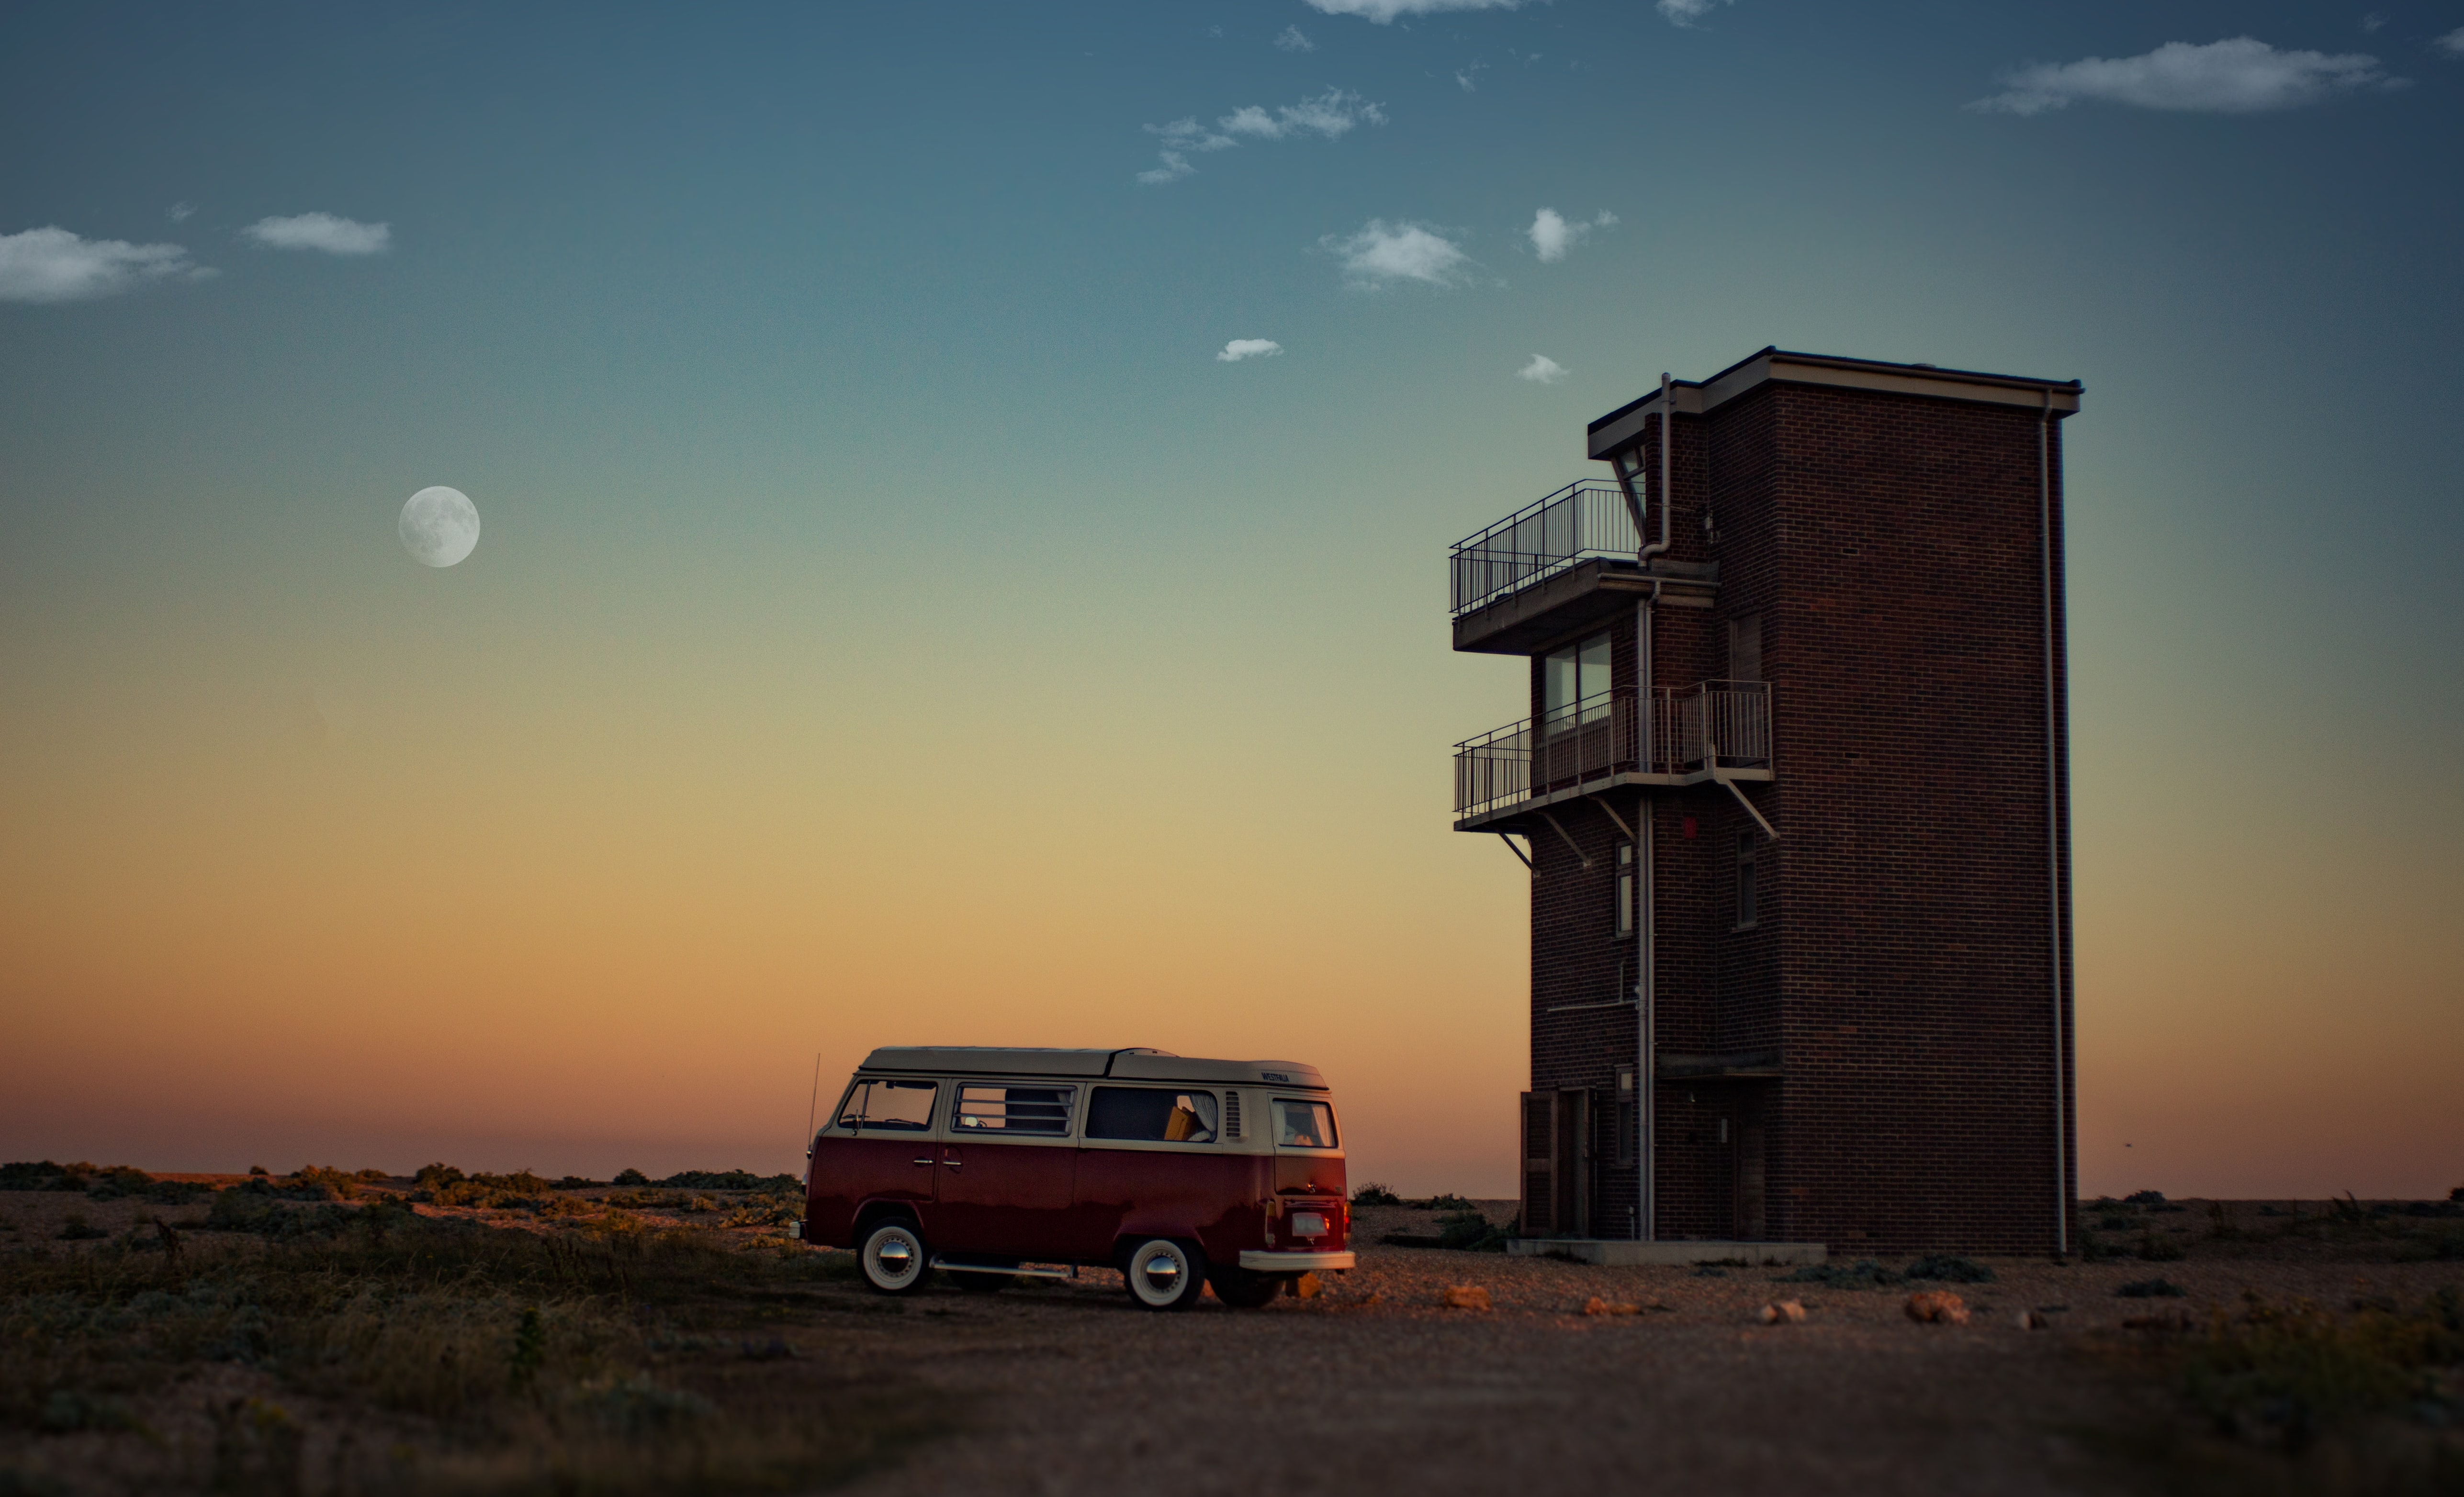 Volkswagen campervan parked next to a standalone building in Dungeness a dawn-or-dusk with a faint moon in the orange-fading-to-blue sky